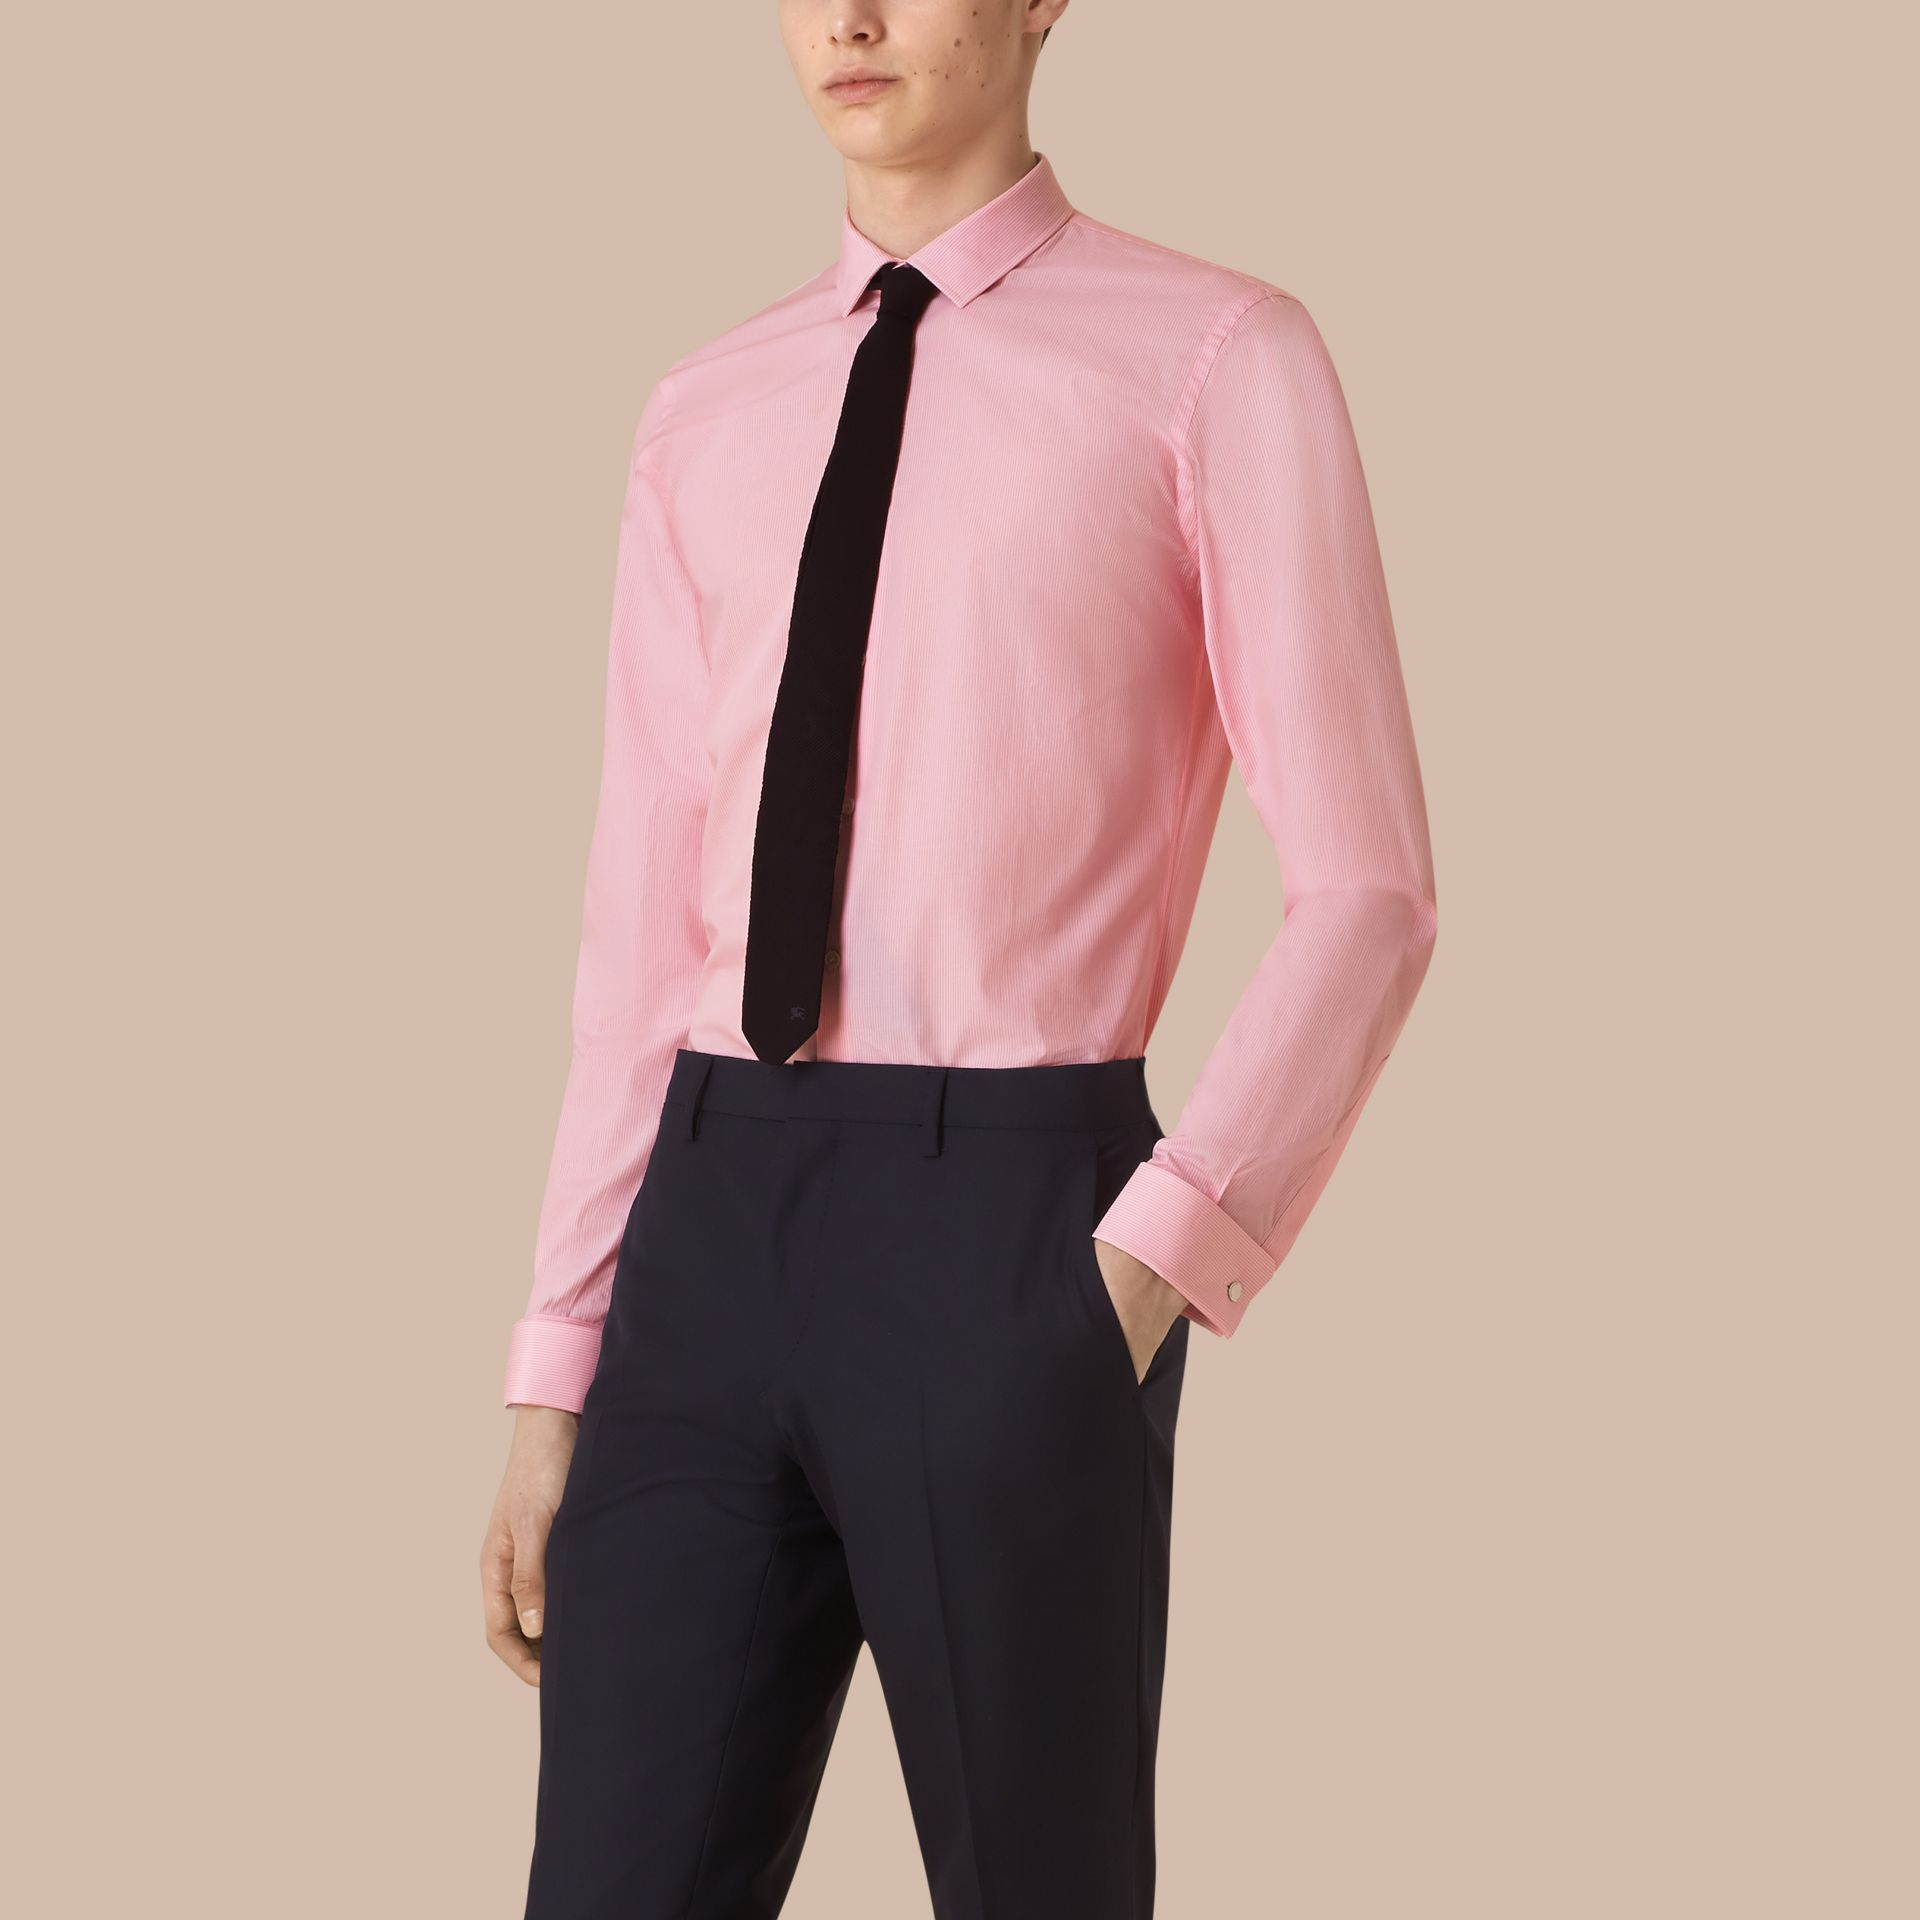 City pink Slim Fit Double-cuff Striped Cotton Poplin Shirt City Pink - gallery image 1